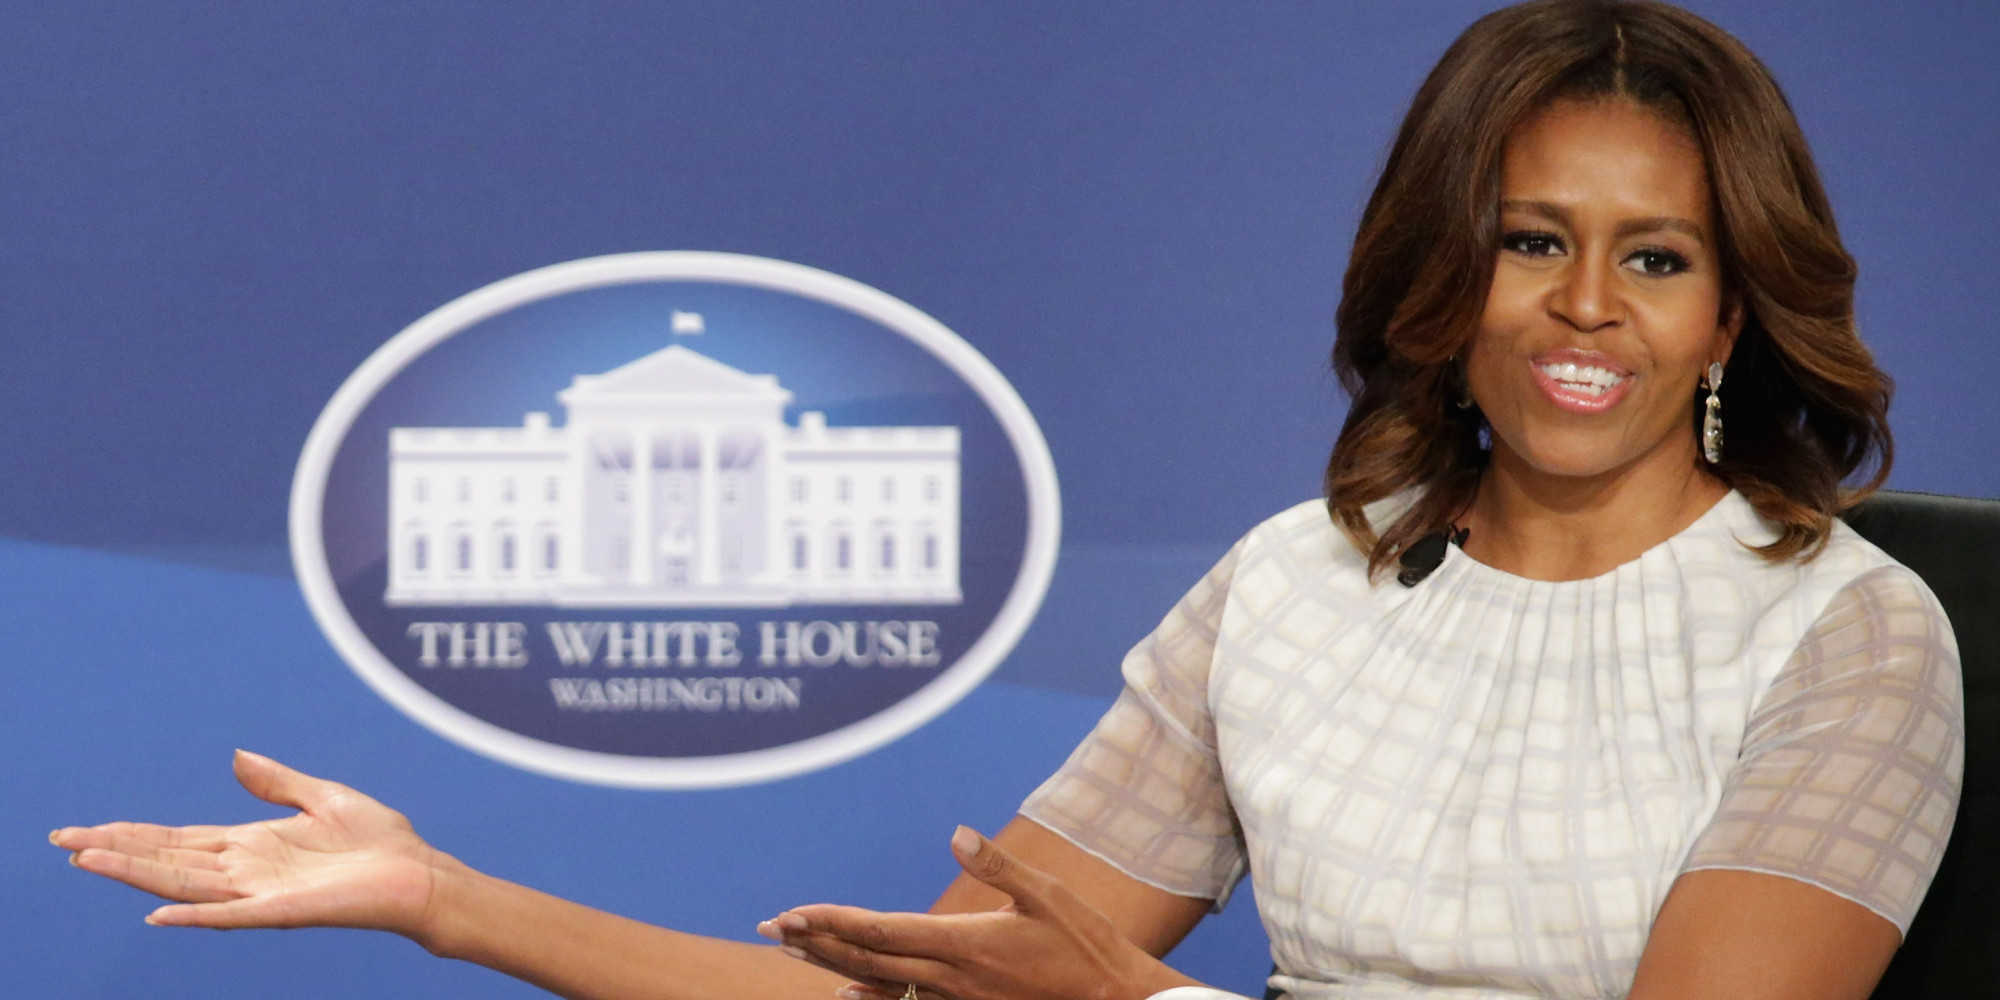 politico.com michelle obama thesis · in actuality it's a distortion of a different out of context quote attributed to michelle obama's thesis in which she http://dynpoliticocom.